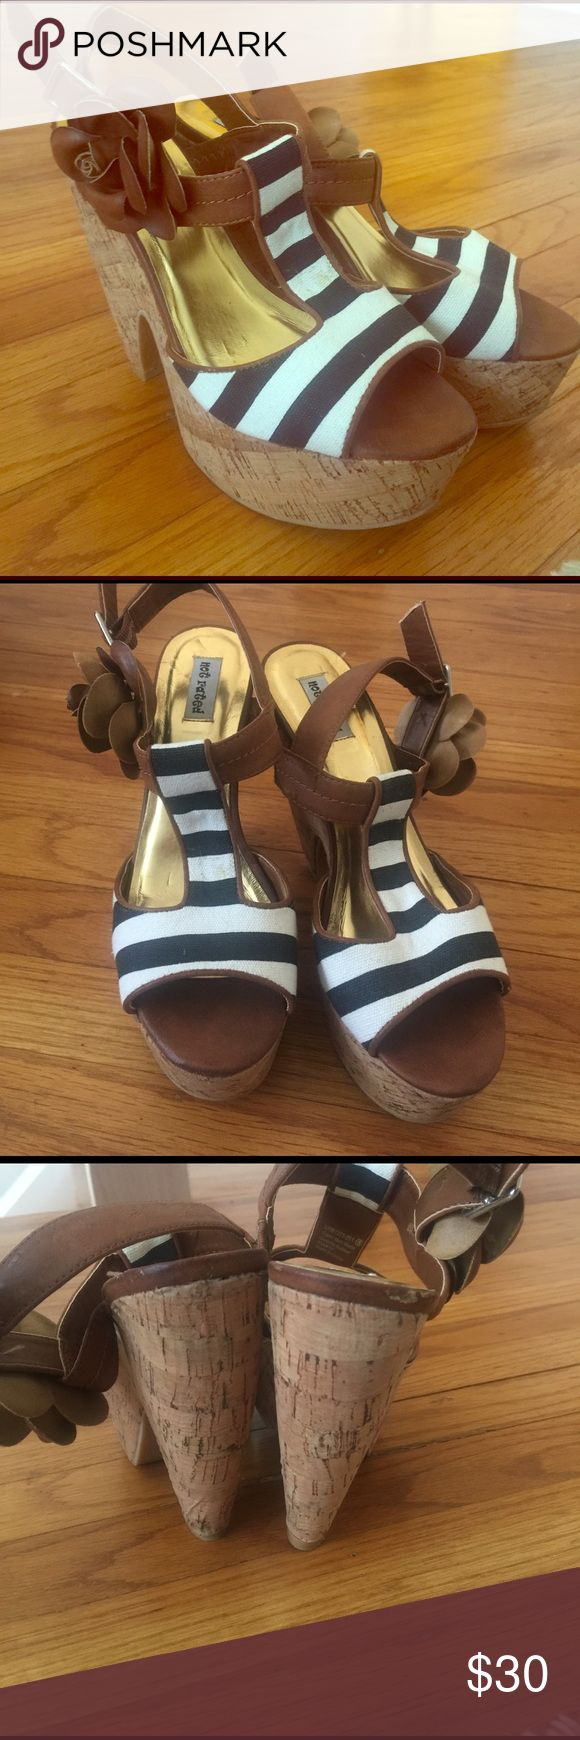 Black and white stripe cork wedges Cork wedges with black and white fabric straps. Faux leather roses by the ankle. Adjustable straps at the ankle. Open toe. Worn 1x. Excellent condition. Not Rated Shoes Sandals